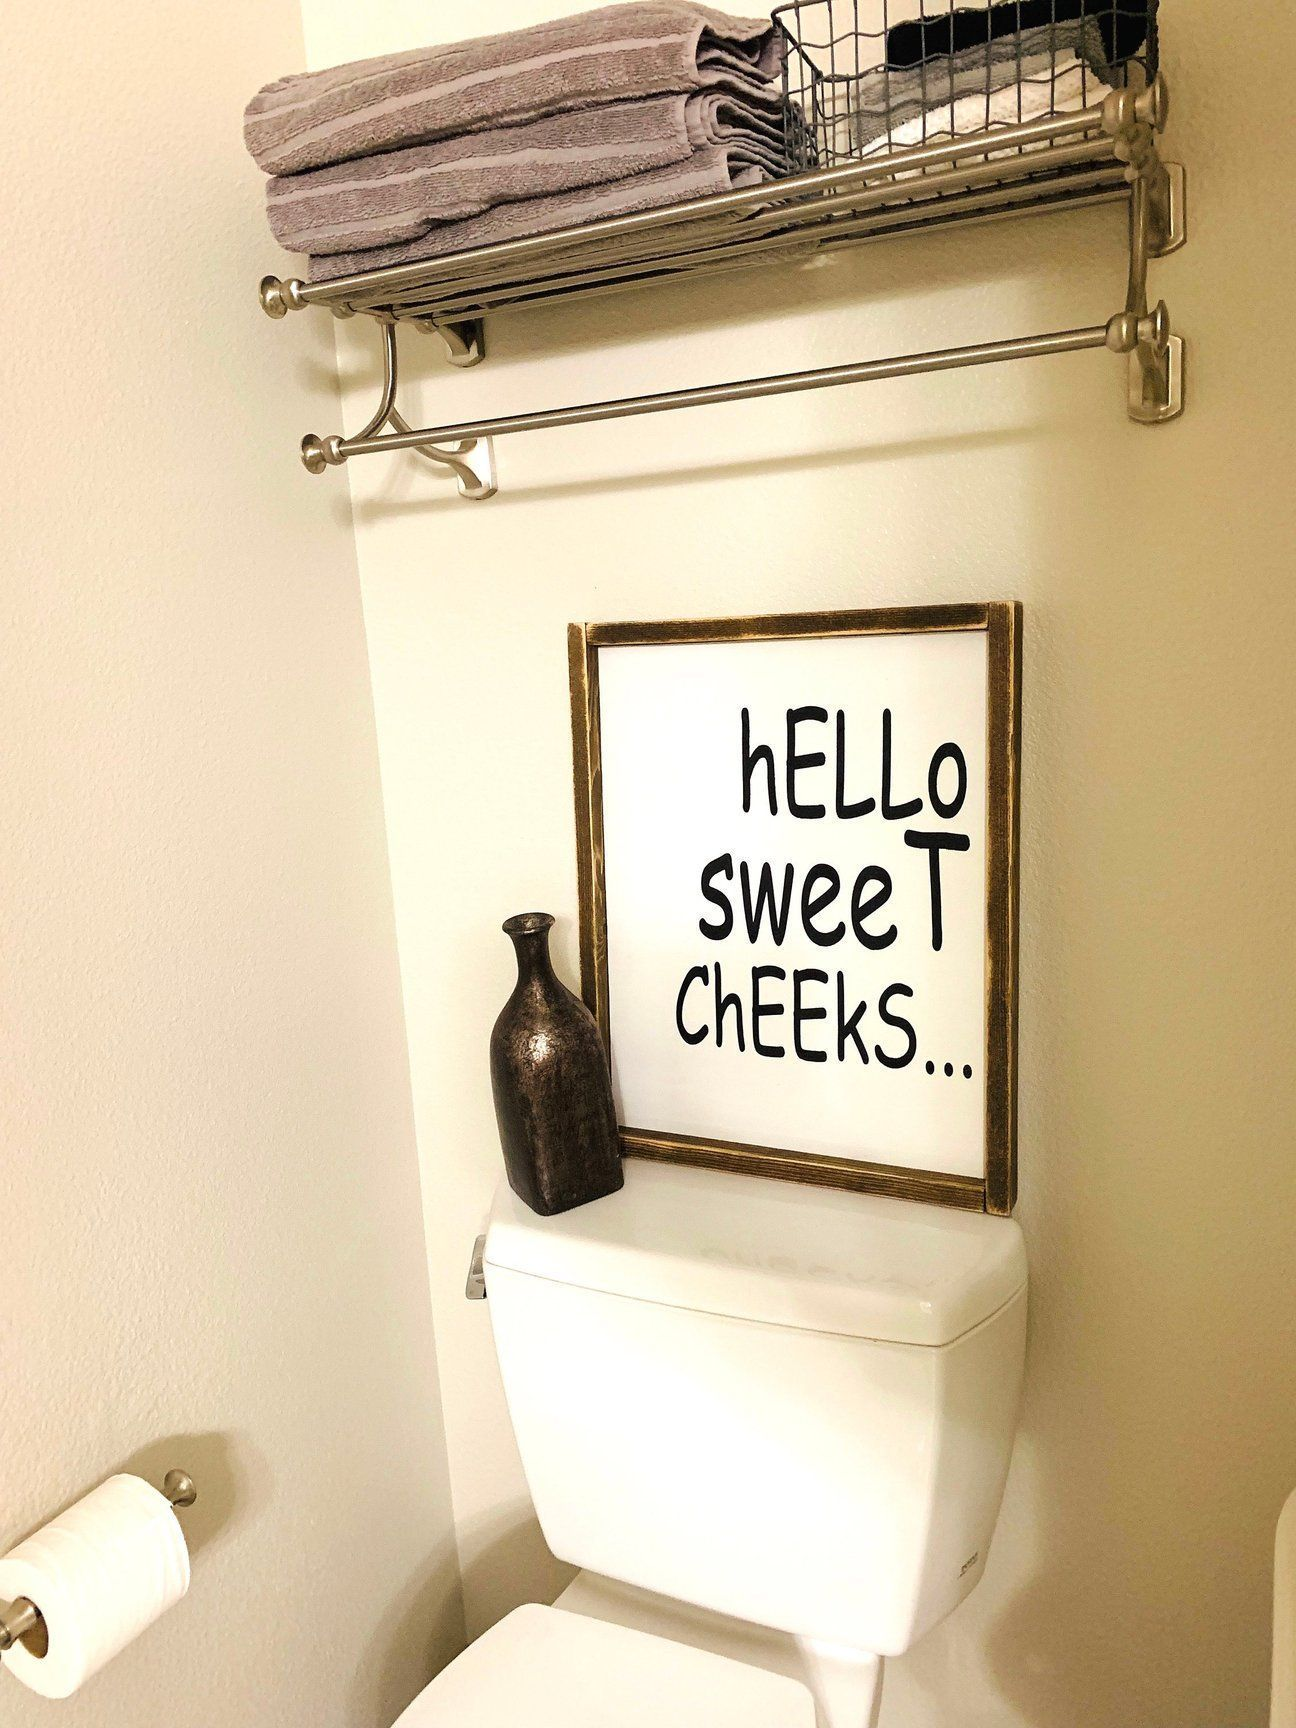 Funny Bathroom Signs, Bathroom Wall Art, Wooden Signs for Restroom, Bathroom Wall Decor, Vanity Decorations